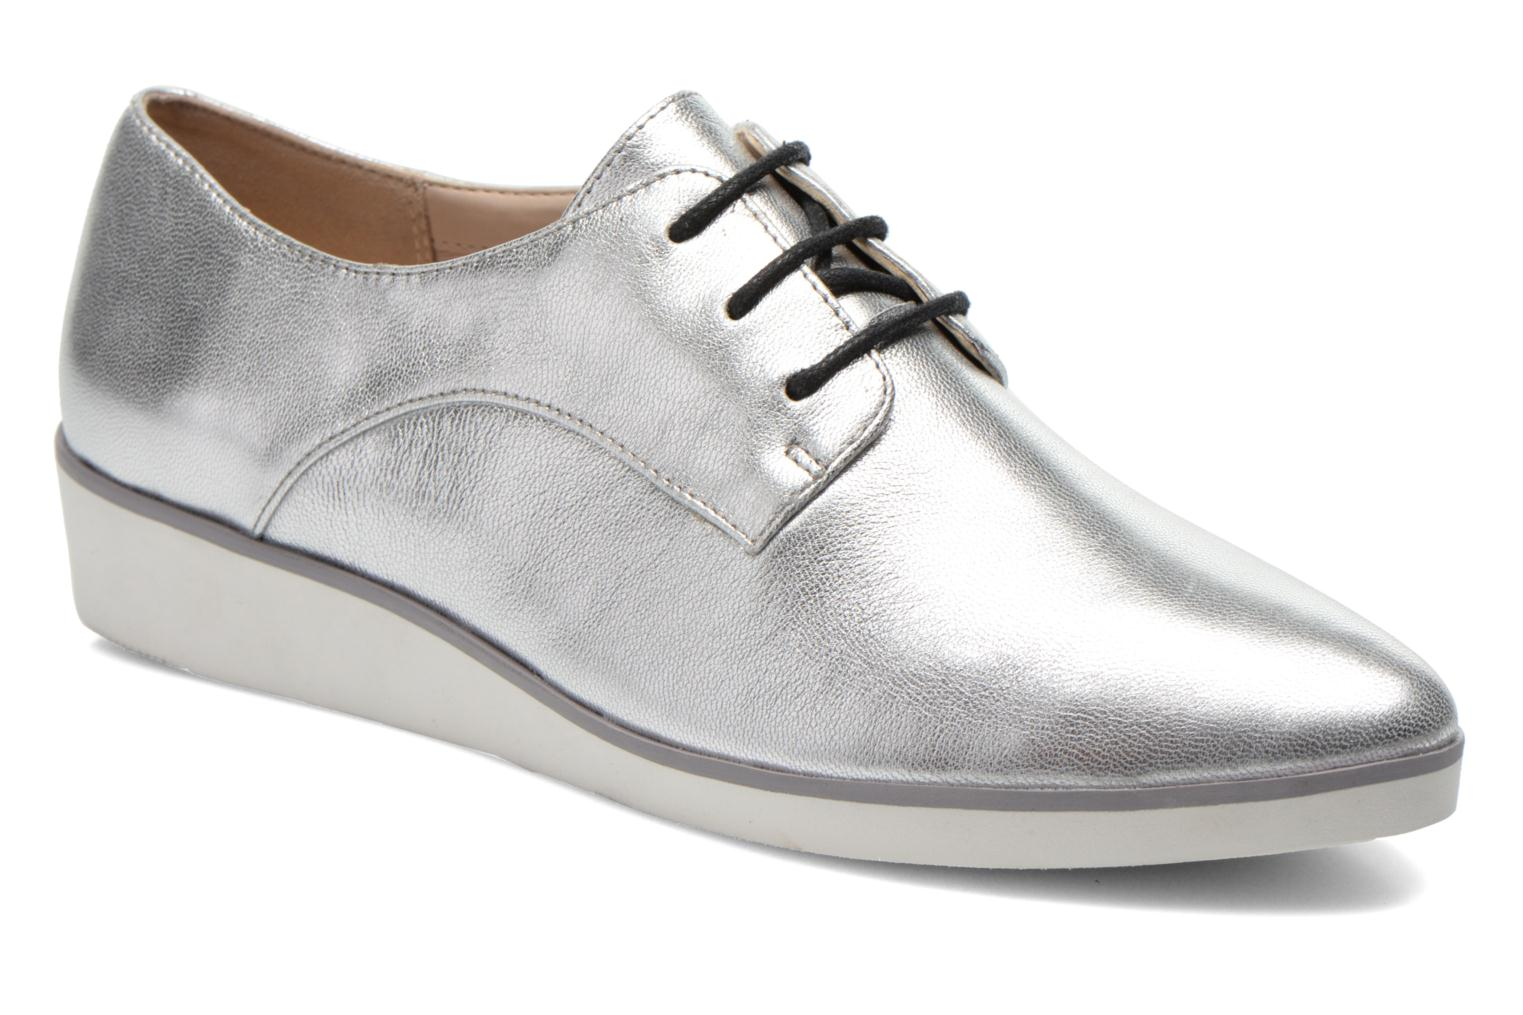 Cressida Grace Silver leather